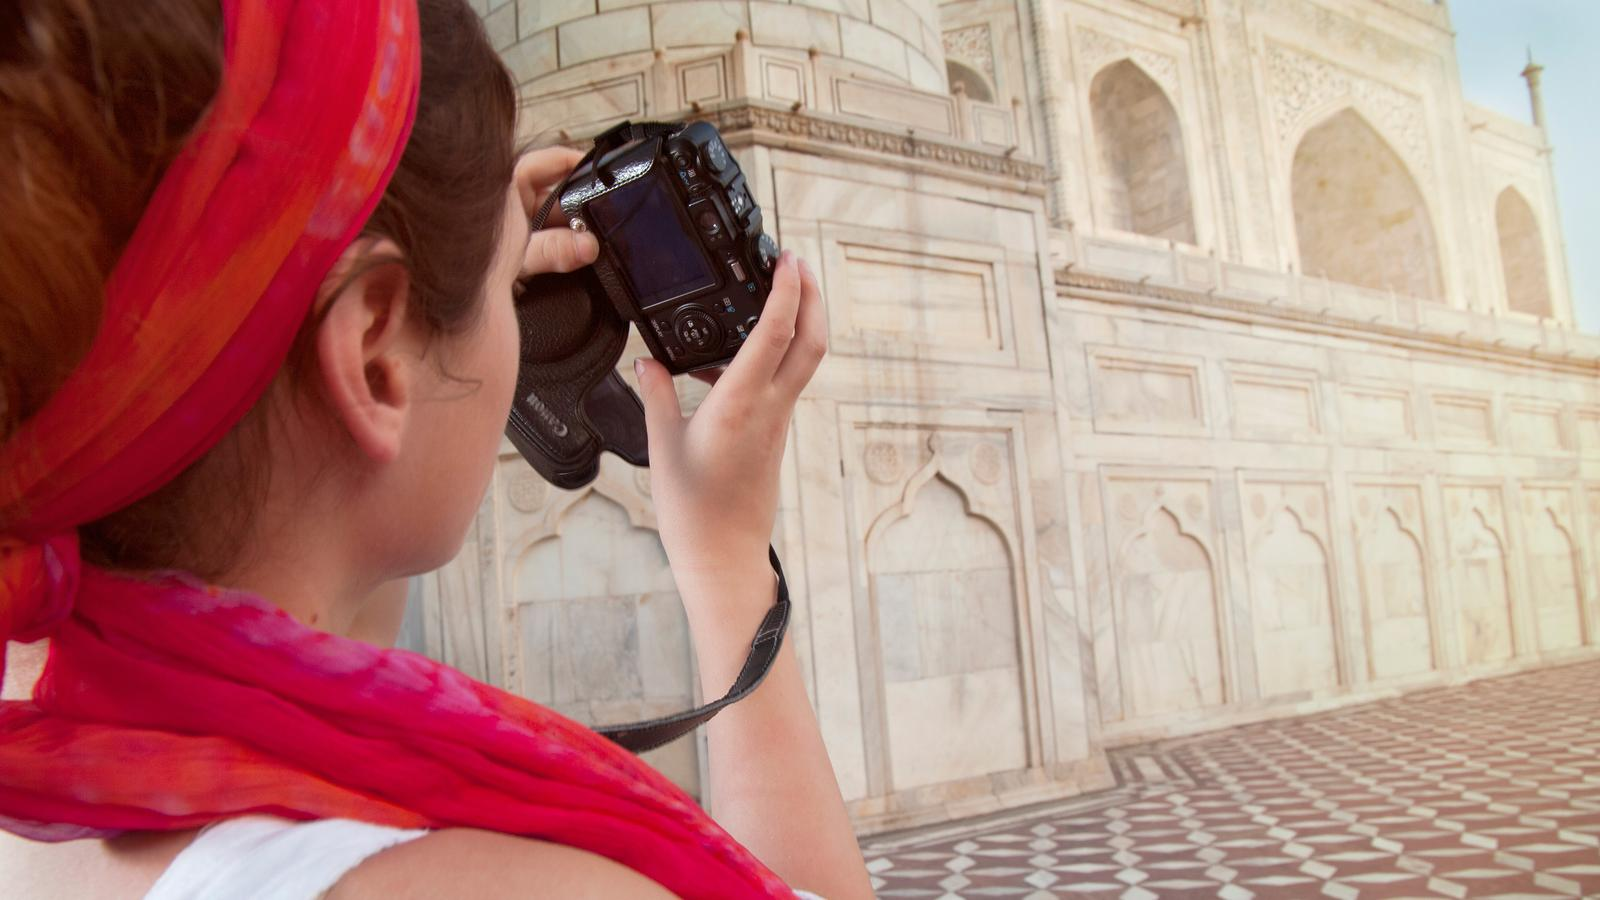 A traveller taking photos of the incredible Taj Mahal in Agra, India